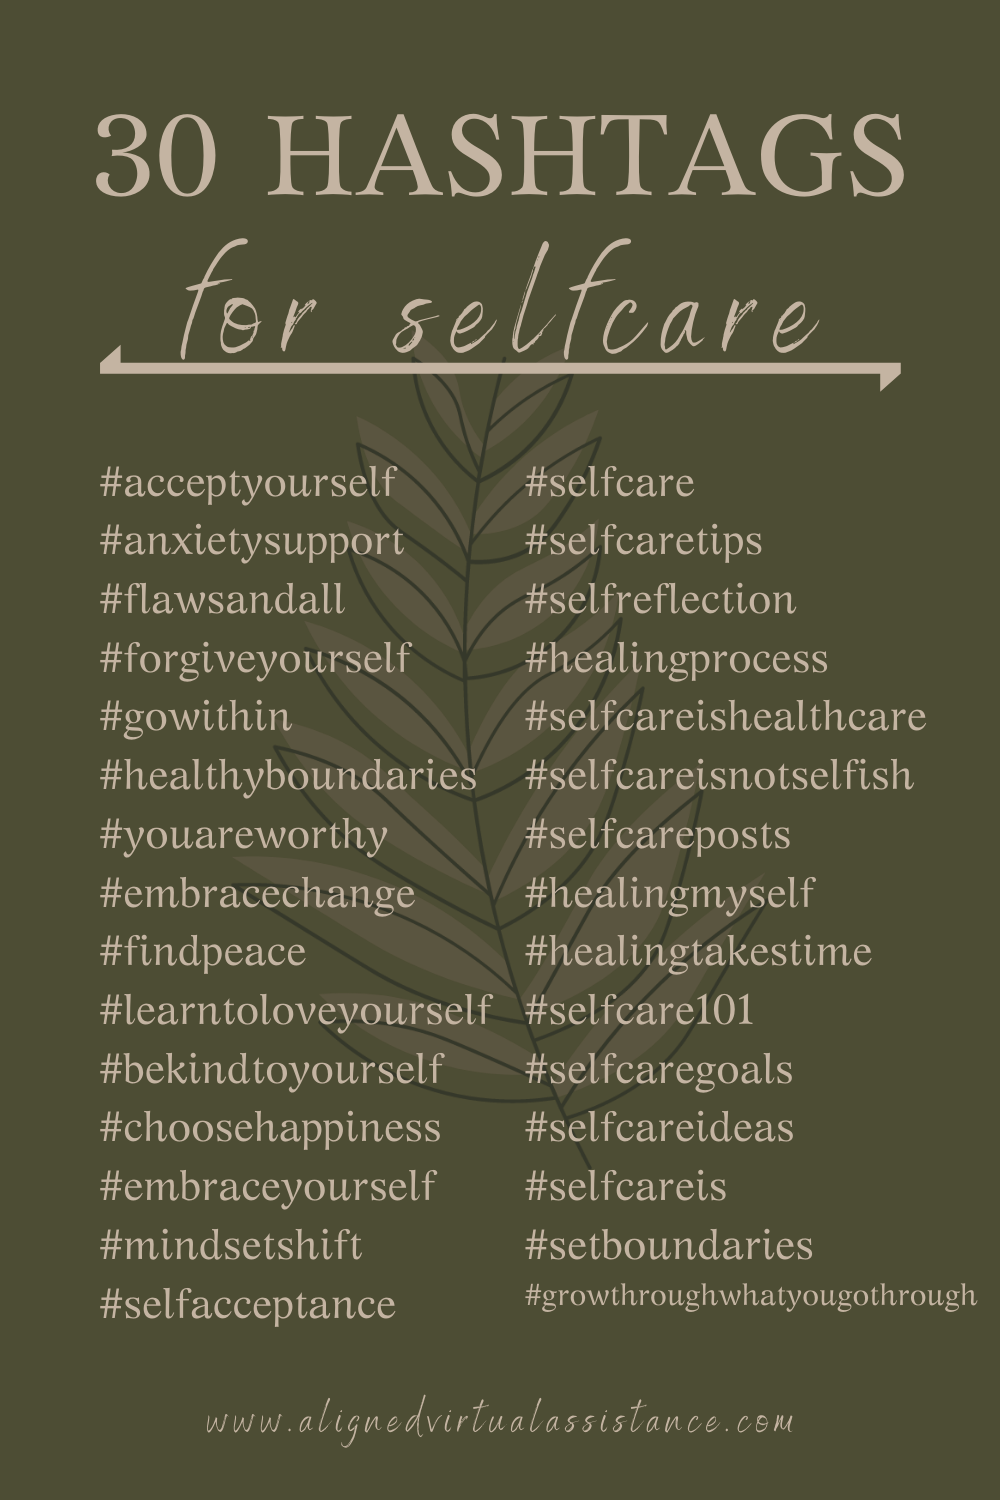 Instagram Hashtags For Selfcare Instagram Tips Instagram Hashtags Podcasts